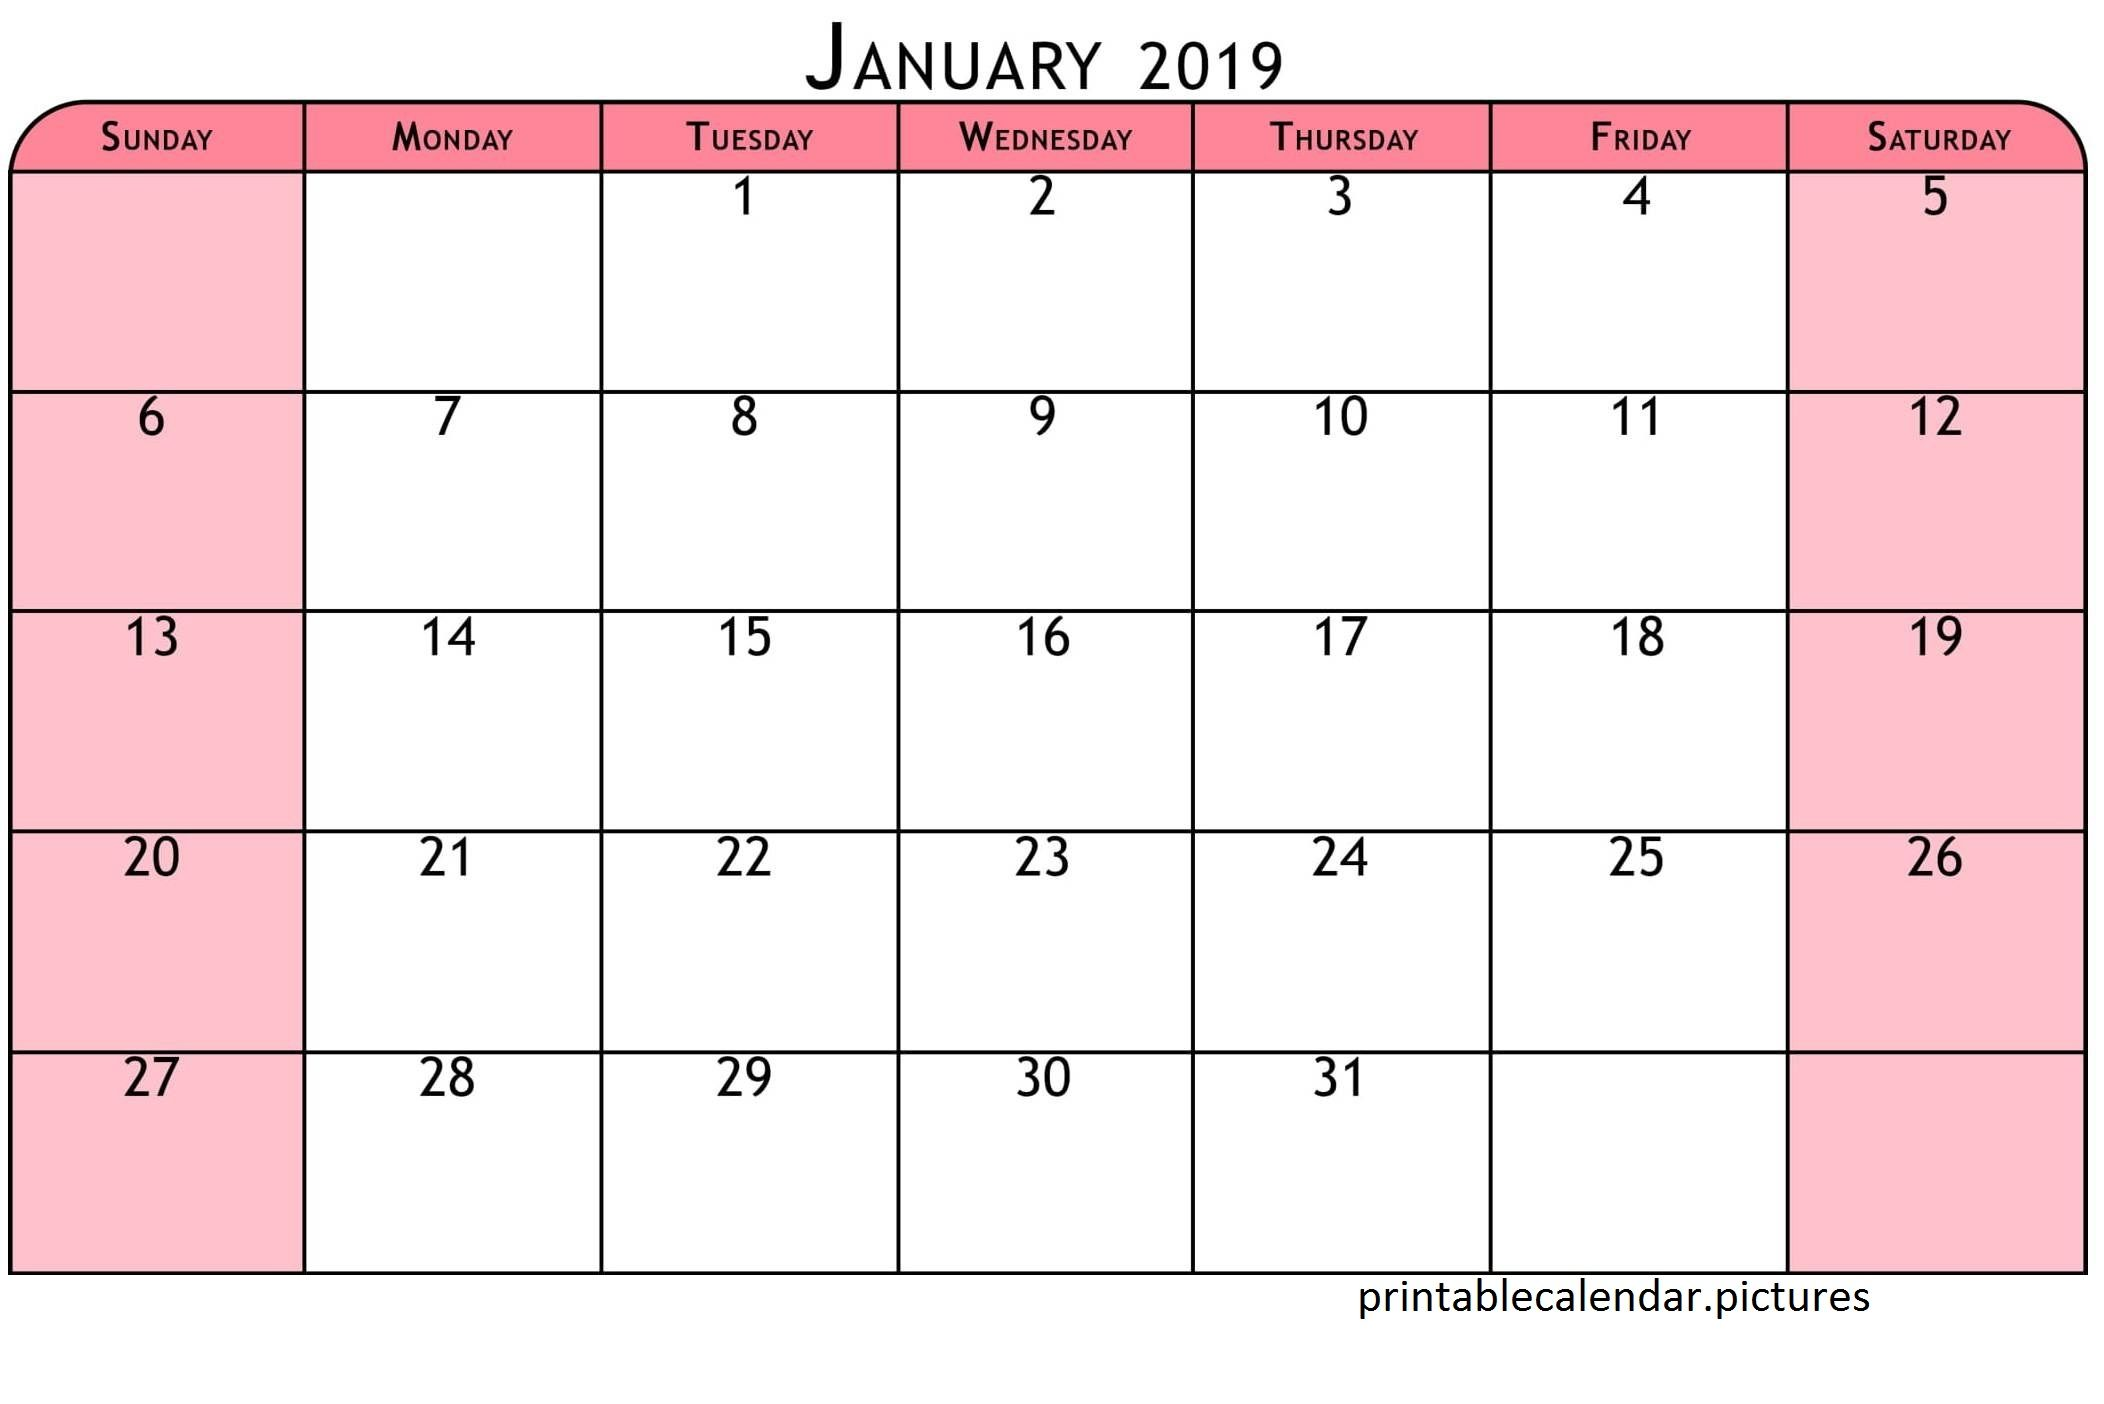 Printable Colorful Calendar January